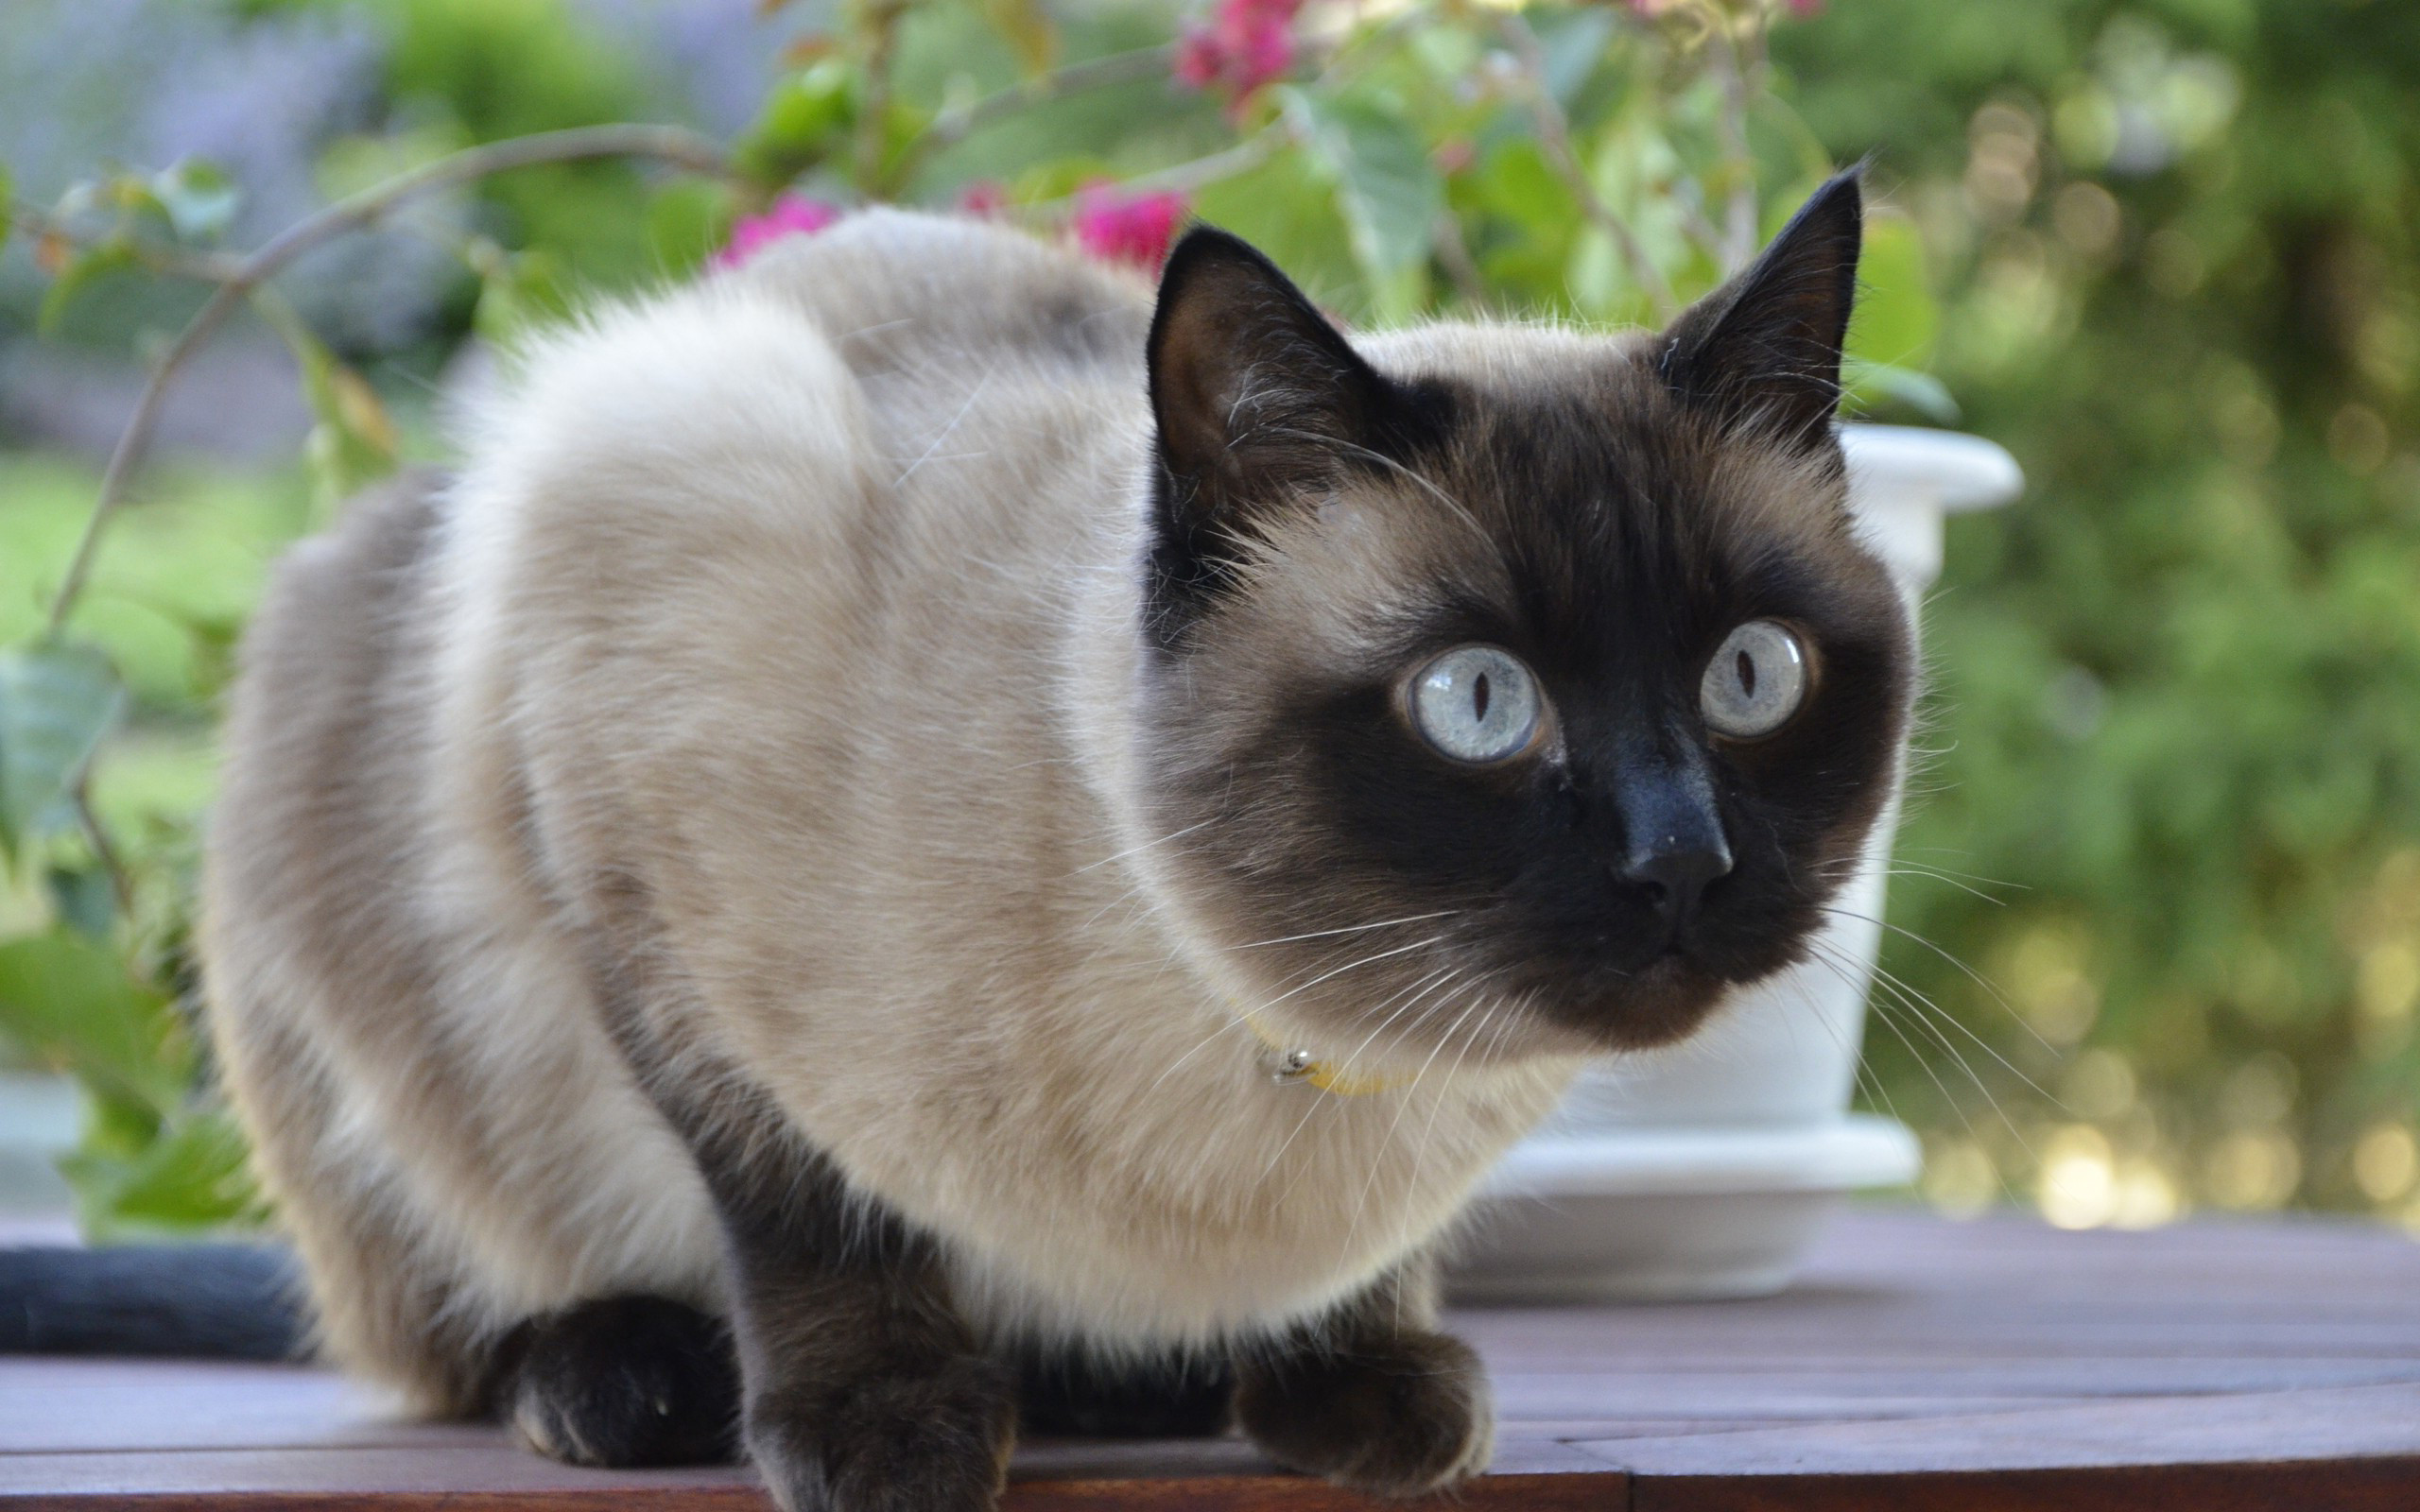 2560x1600 Beautiful Siamese cat saw someone wallpapers and images - wallpapers,  pictures, photos